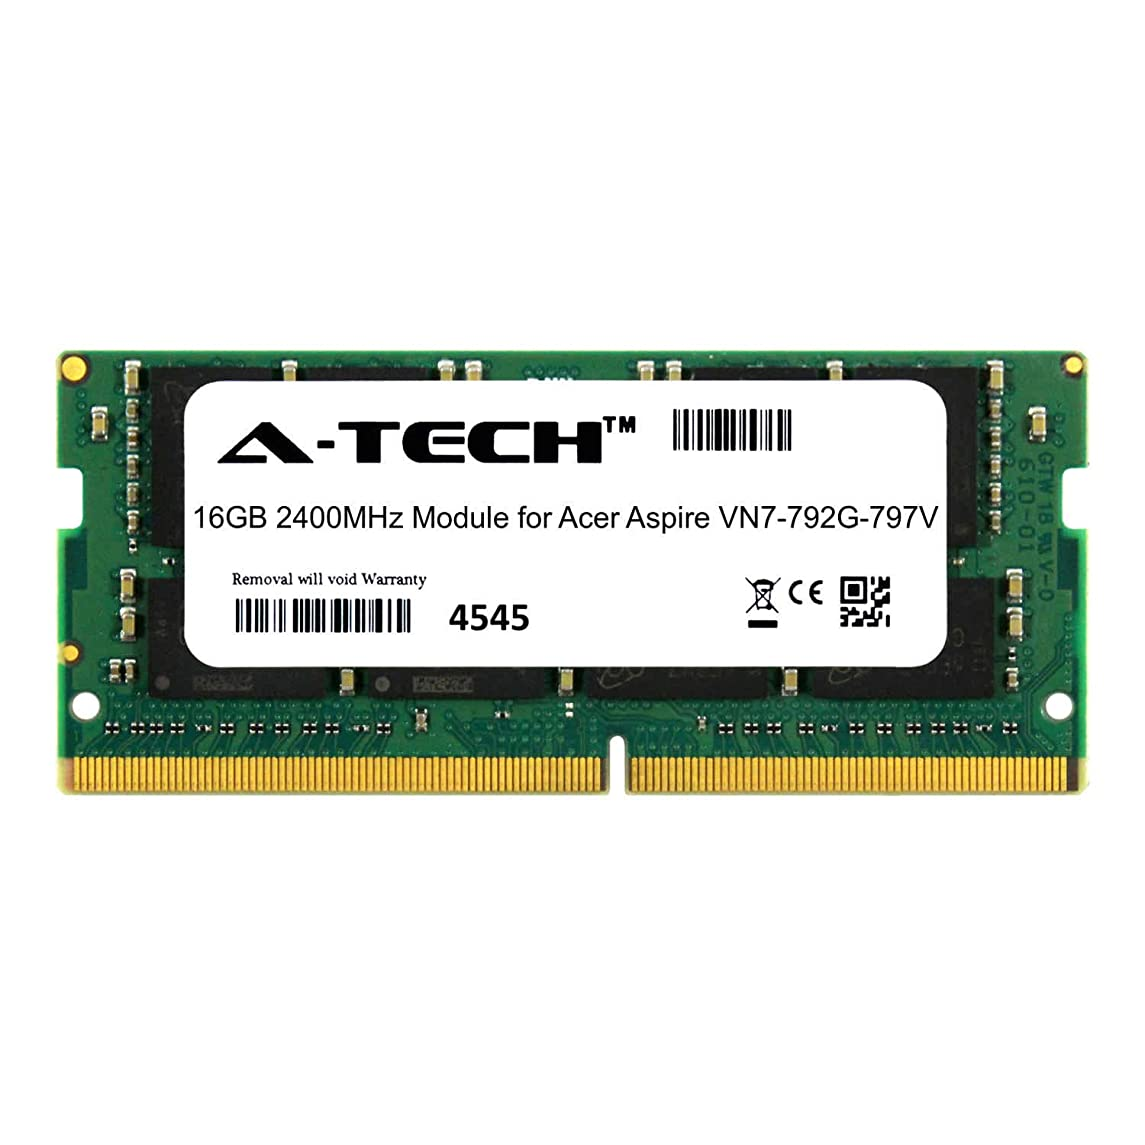 A-Tech 16GB Module for Acer Aspire VN7-792G-797V Laptop & Notebook Compatible DDR4 2400Mhz Memory Ram (ATMS268713A25831X1)